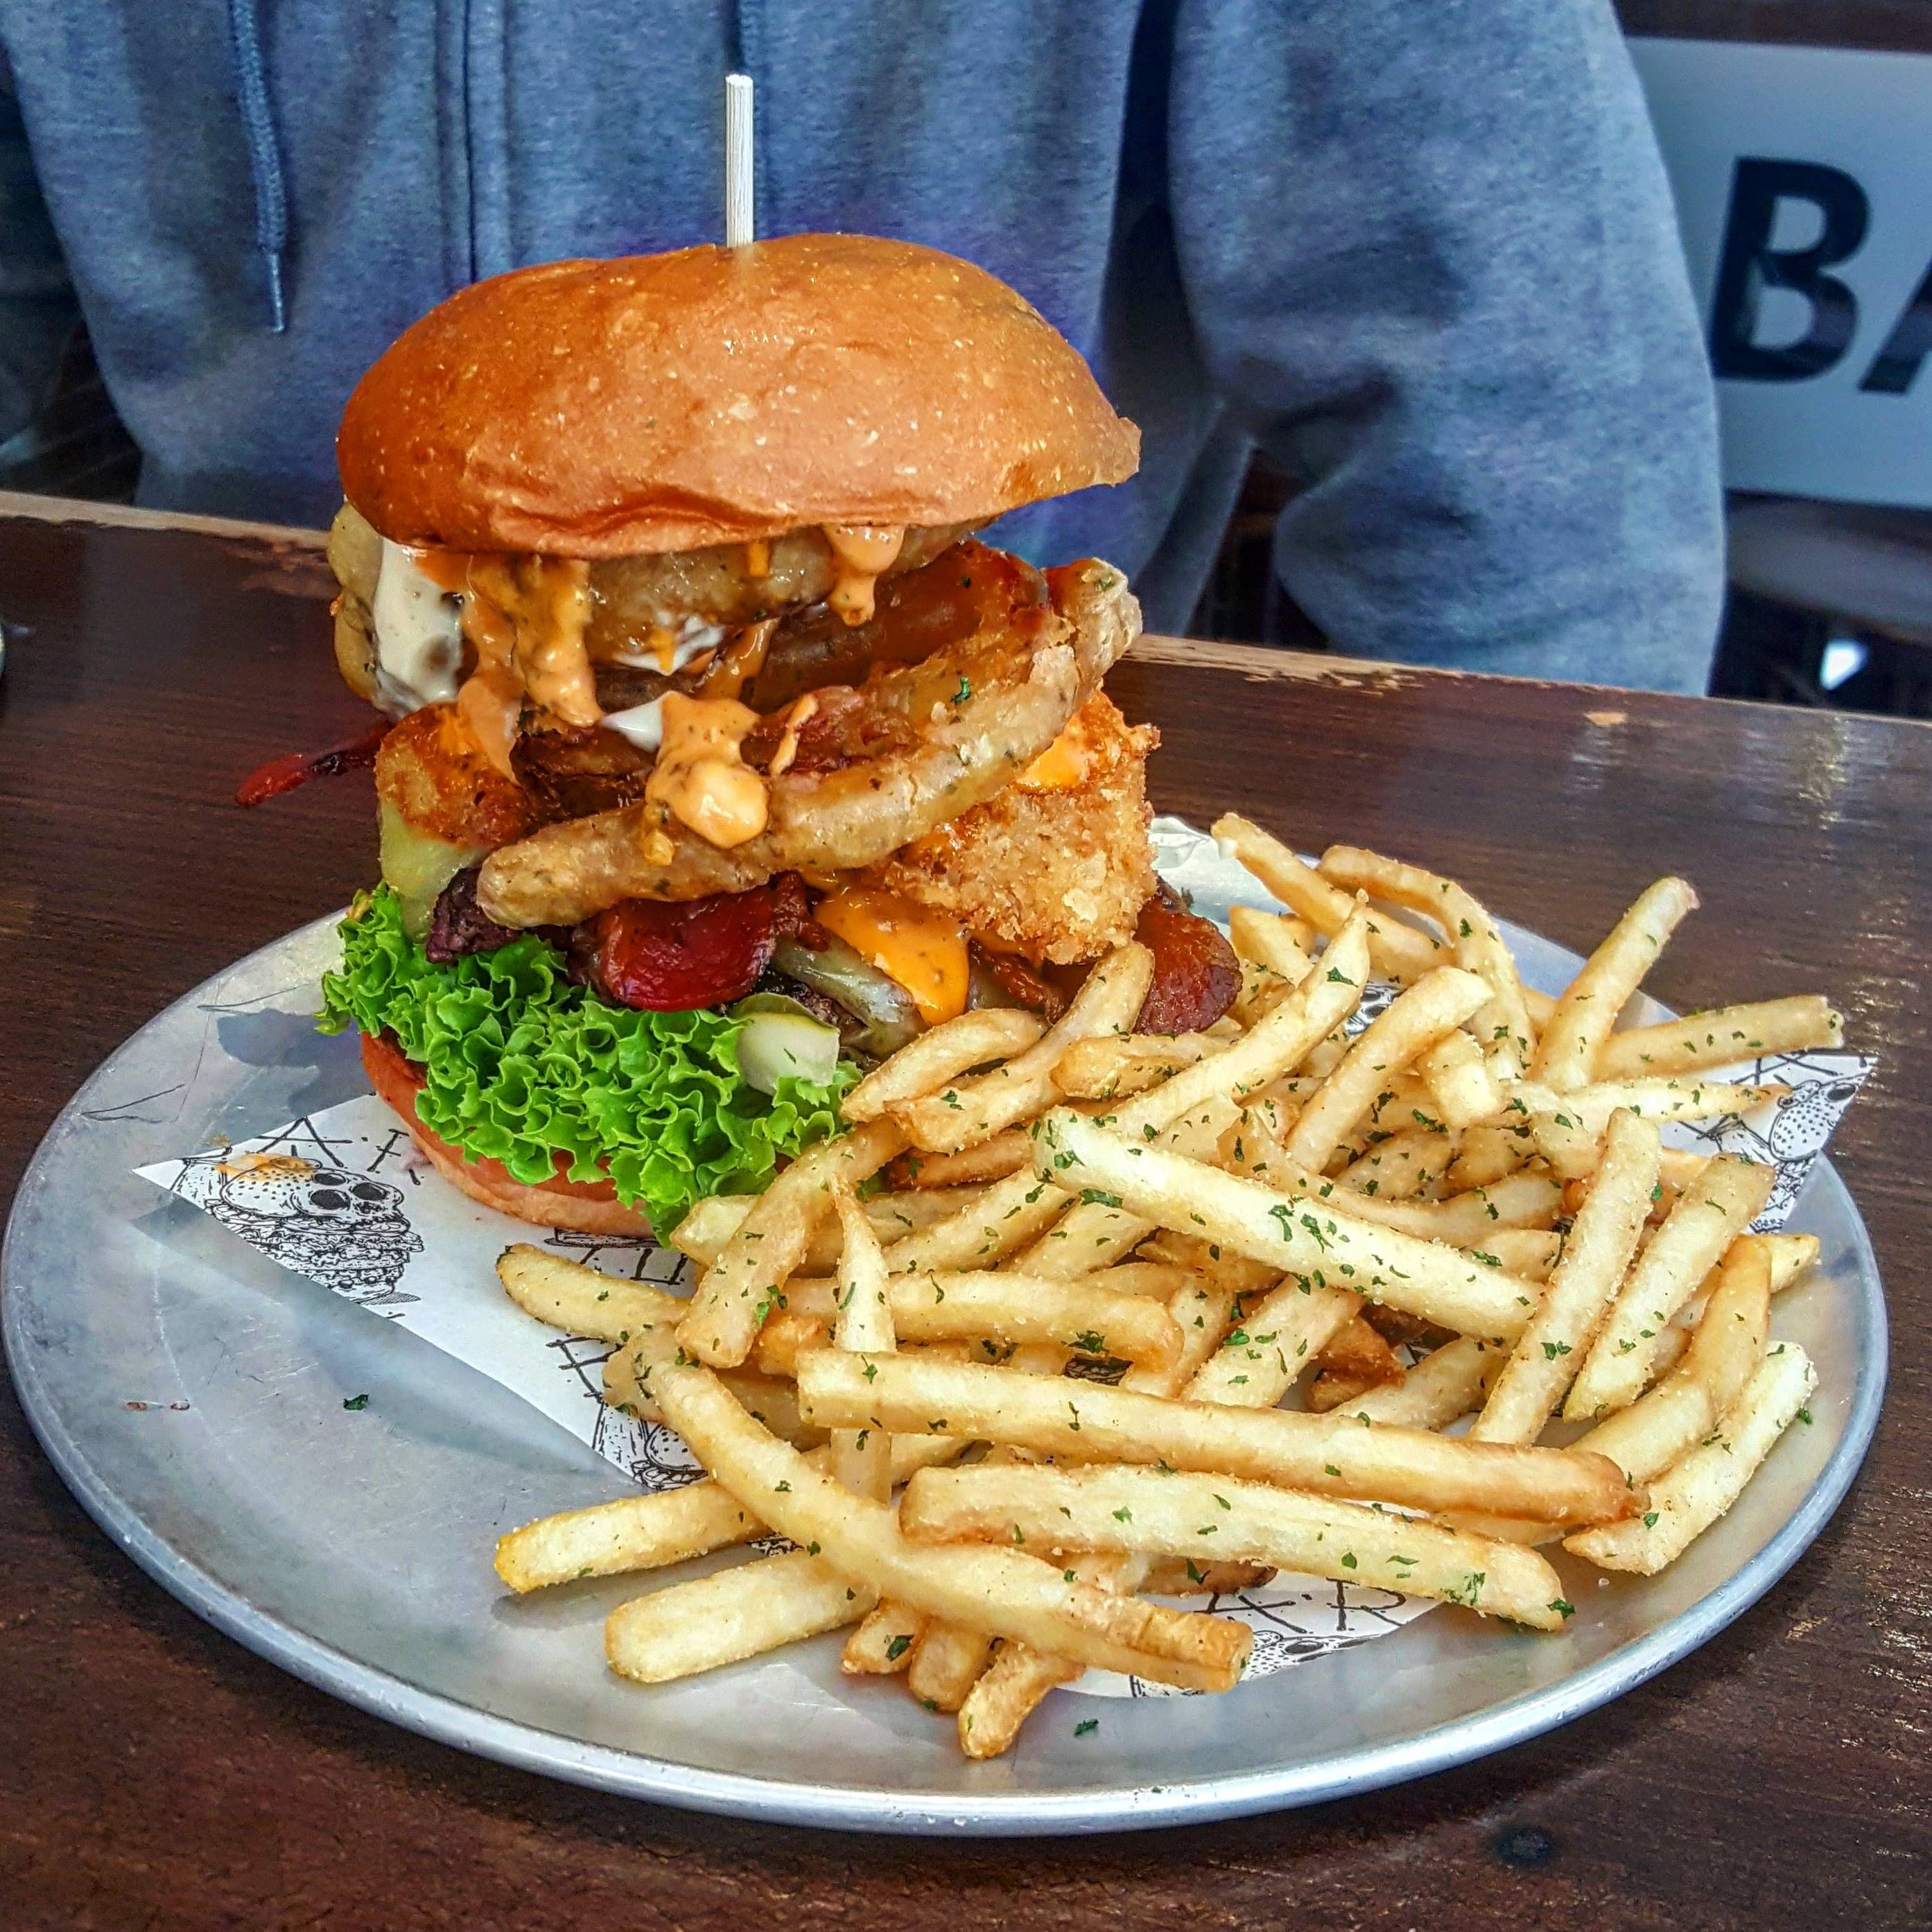 Surf And Turf Burger From Sydney Australia Recipes Food Cooking Delicious Foodie Foodrecipes Cook Recipe Health Surf And Turf Food Burger